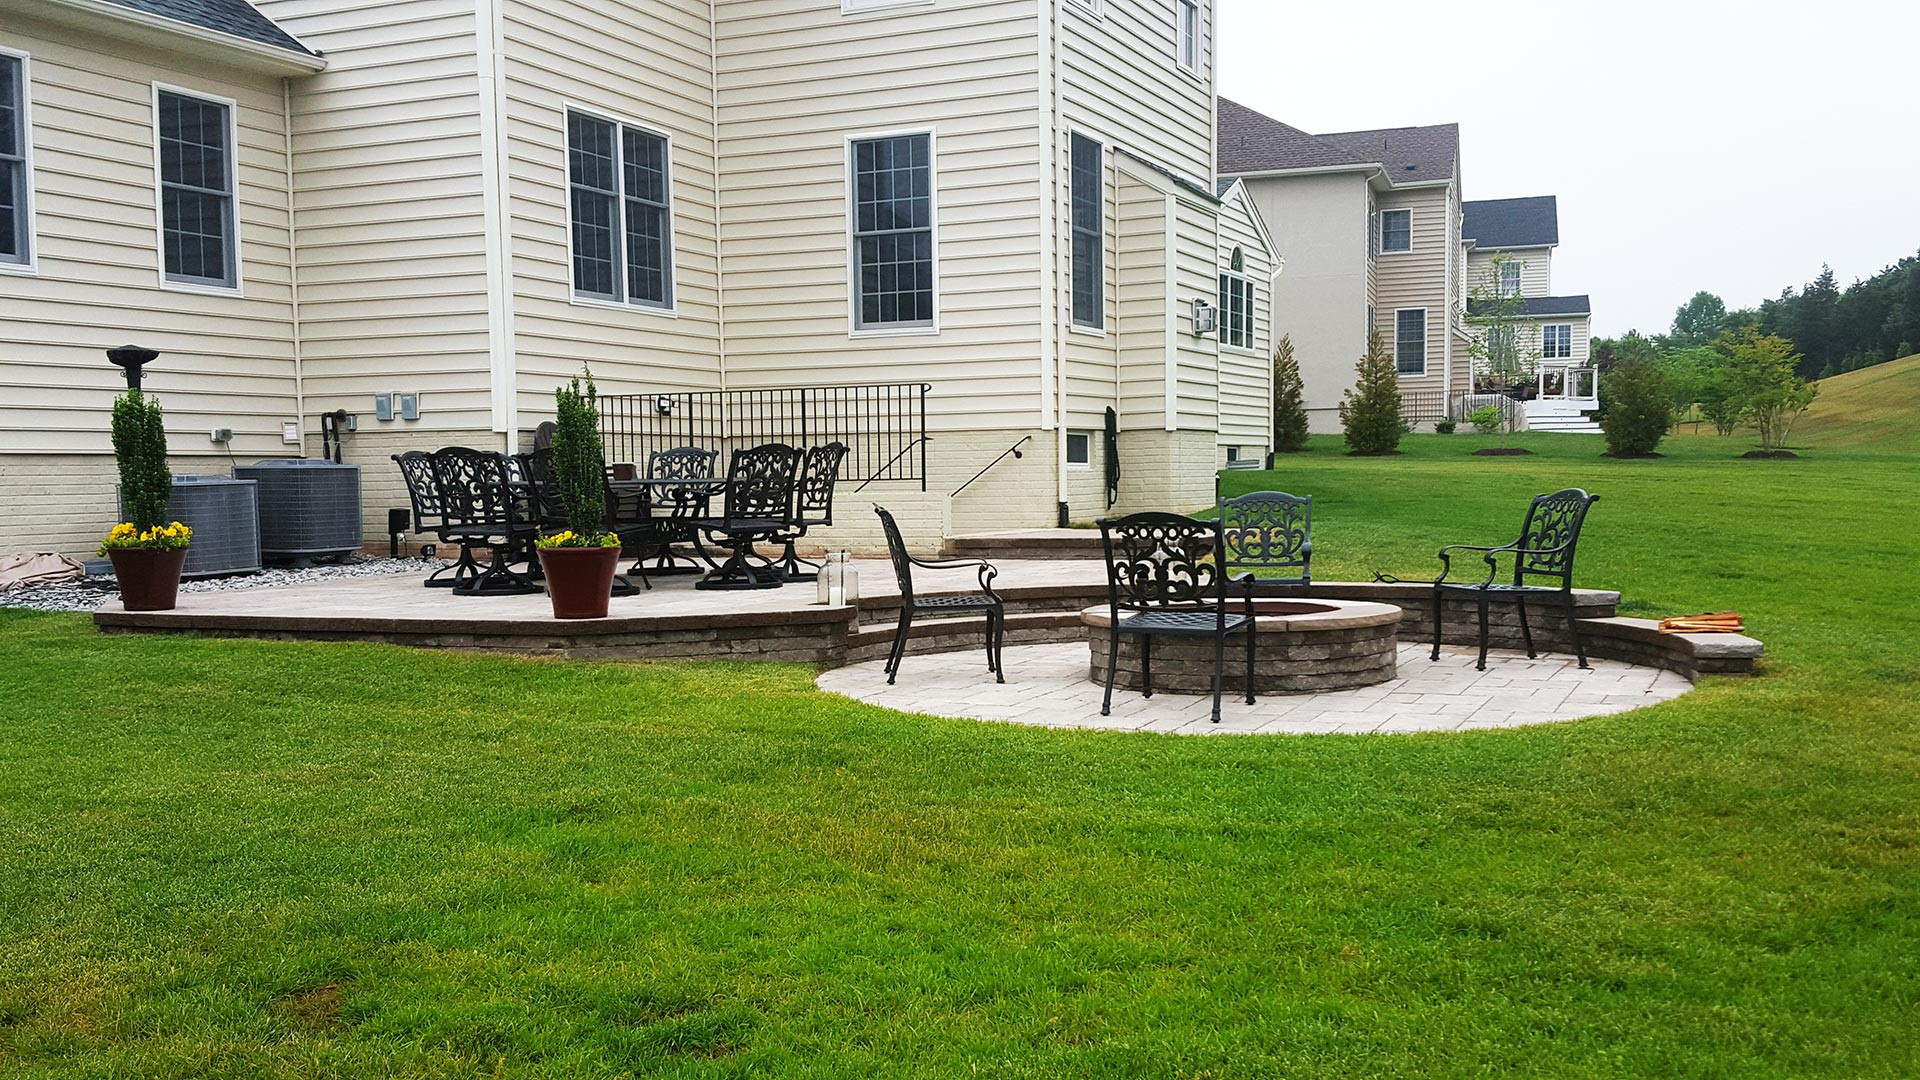 New Baltimore, VA home property with healthy lawn and custom patio and fire pit construction.